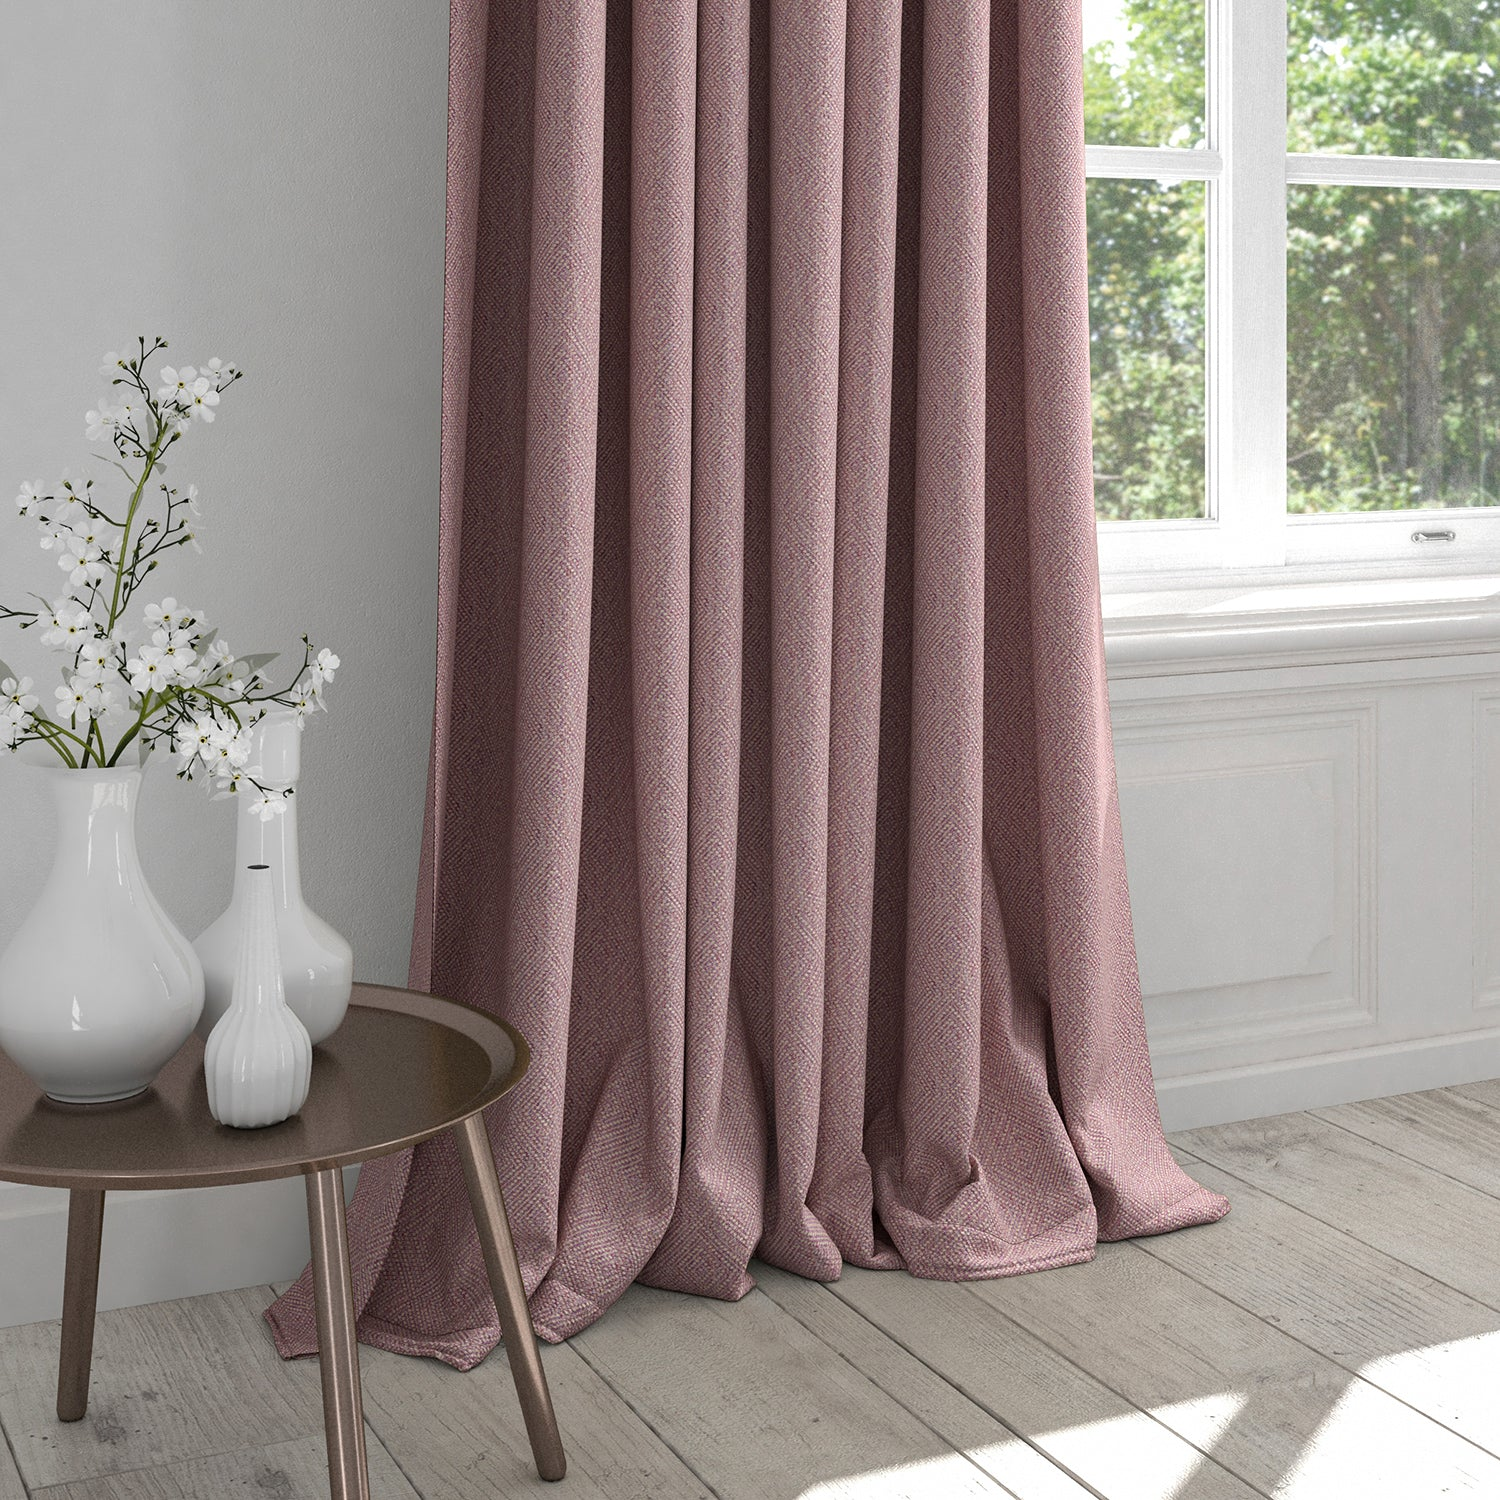 Curtain in a purple fabric with a light geometric woven design